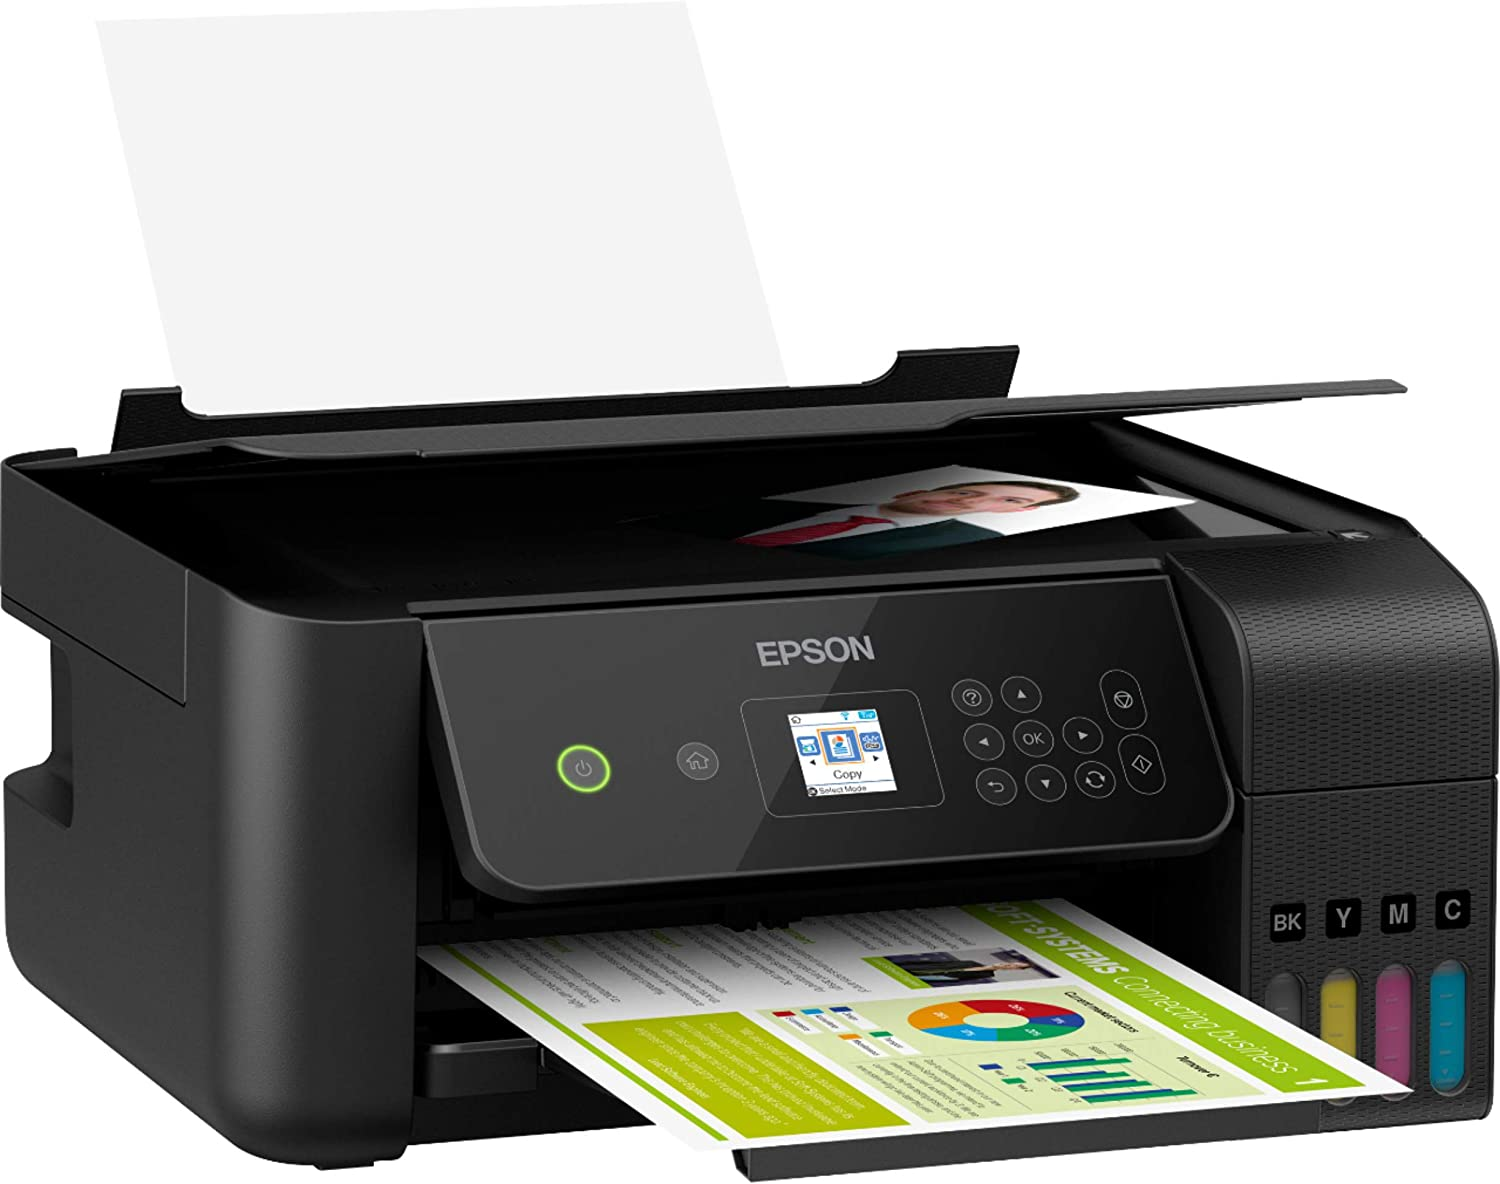 Epson EcoTank ET 2719 Wireless Color Inkjet All-in-One Supertank Printer for Home Business Office - Black - Print Scan Copy - Voice Activated - 10.5 ppm, Borderless Photo Printing, Ethernet